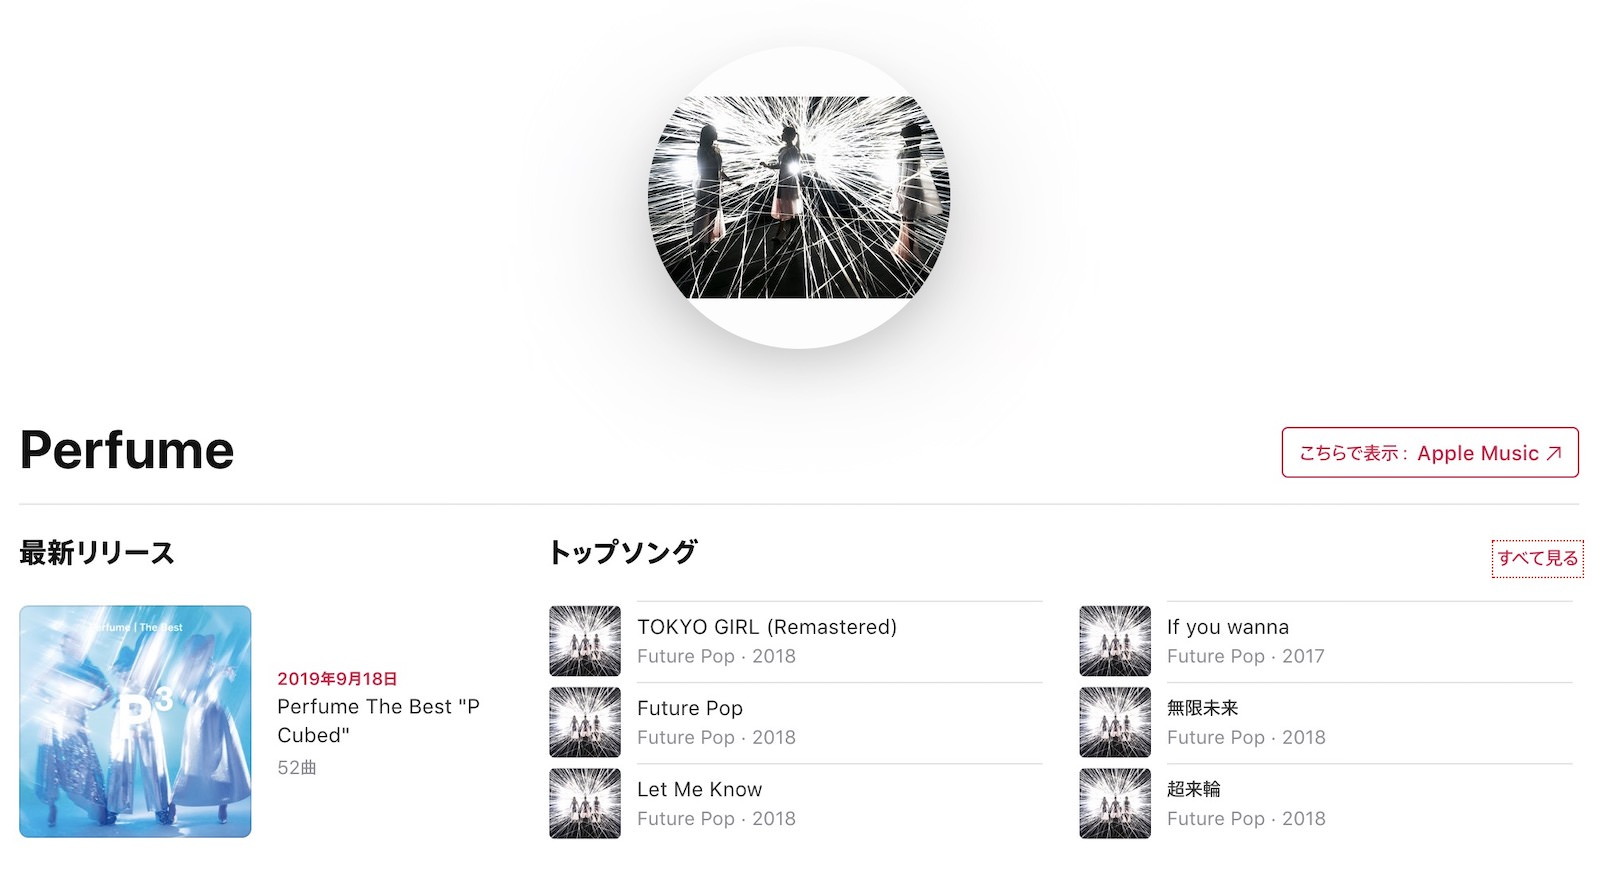 Perfume on Apple Music